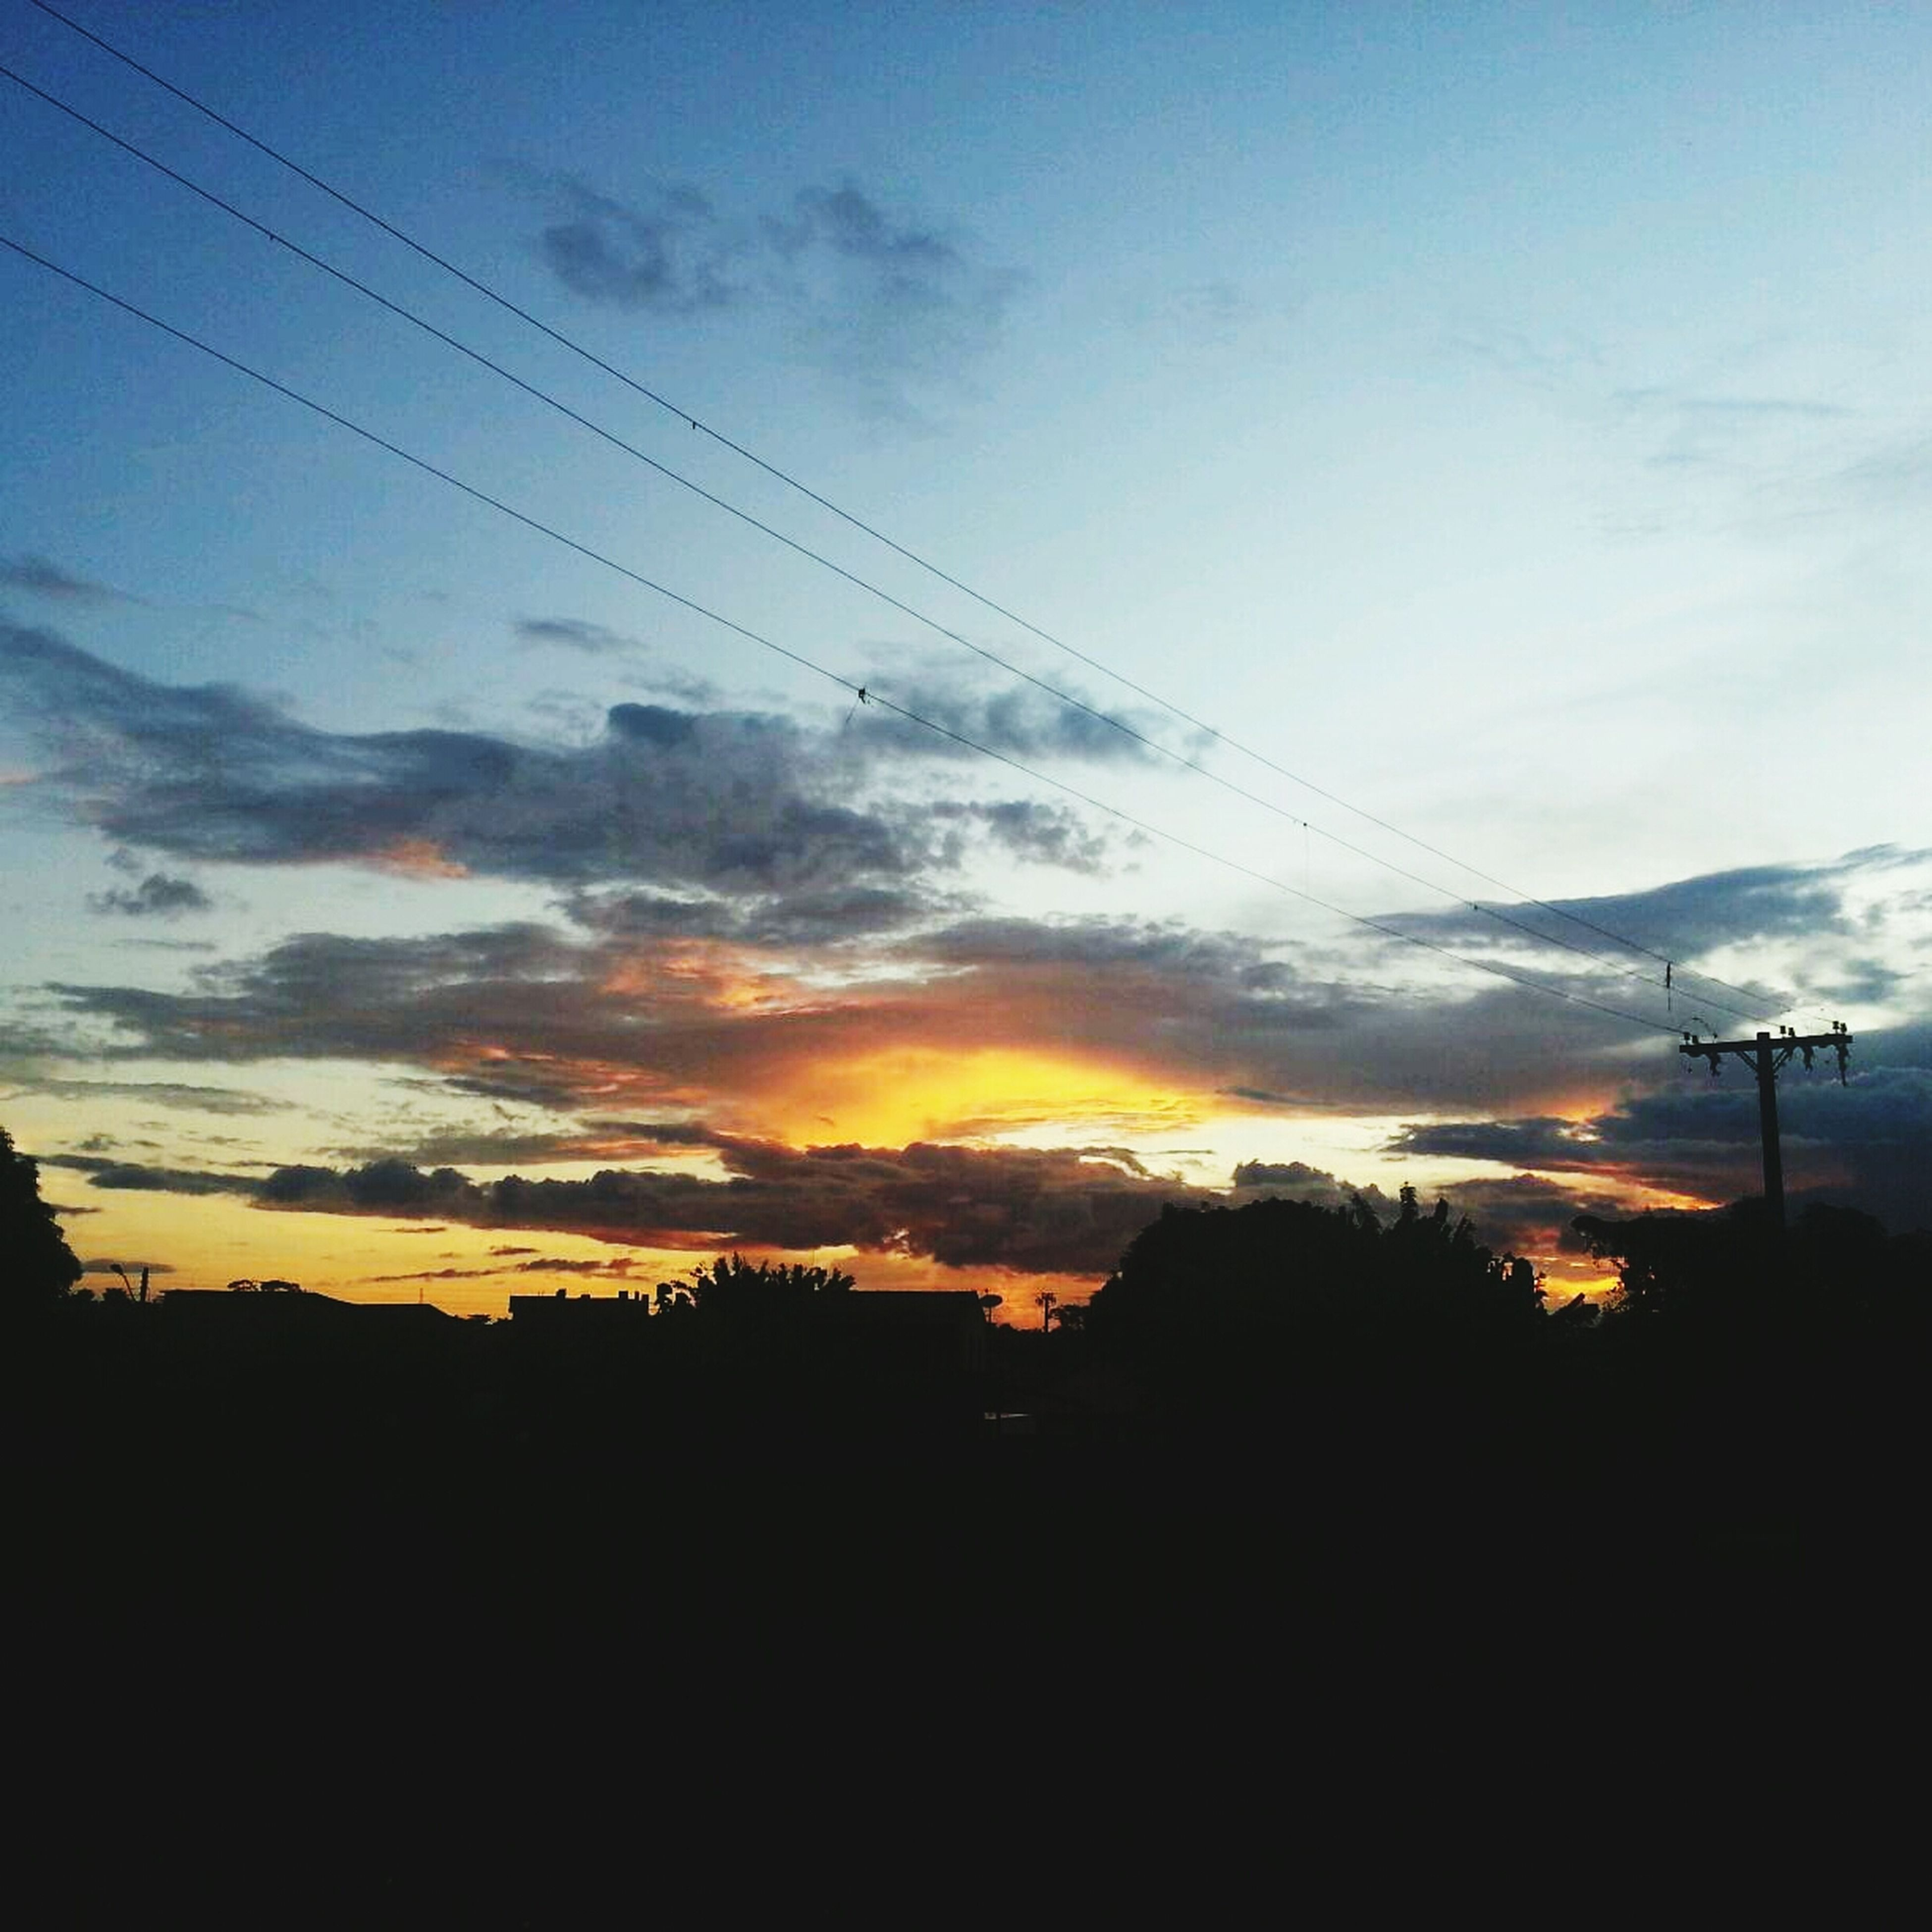 sunset, silhouette, sky, power line, electricity pylon, scenics, electricity, beauty in nature, tranquility, tranquil scene, cloud - sky, power supply, cable, tree, landscape, nature, cloud, orange color, power cable, idyllic